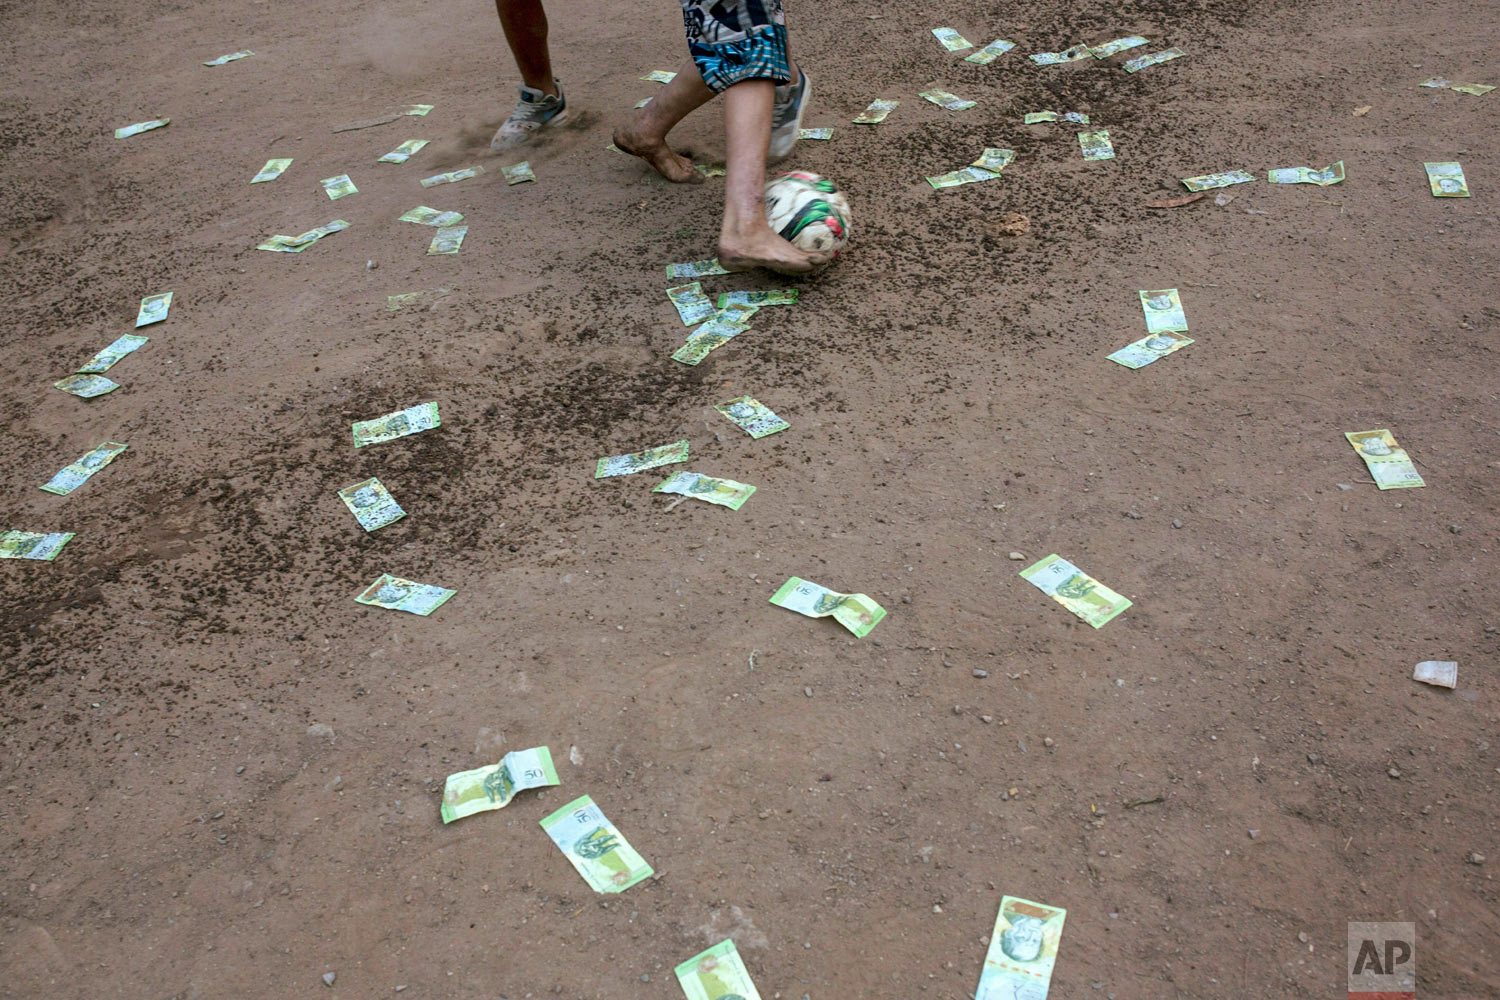 Men play football amid discarded 50 Bolivar bills, outside a building occupied by squatting families in Caracas, Venezuela, Tuesday, May 7, 2019. (AP Photo/Rodrigo Abd)